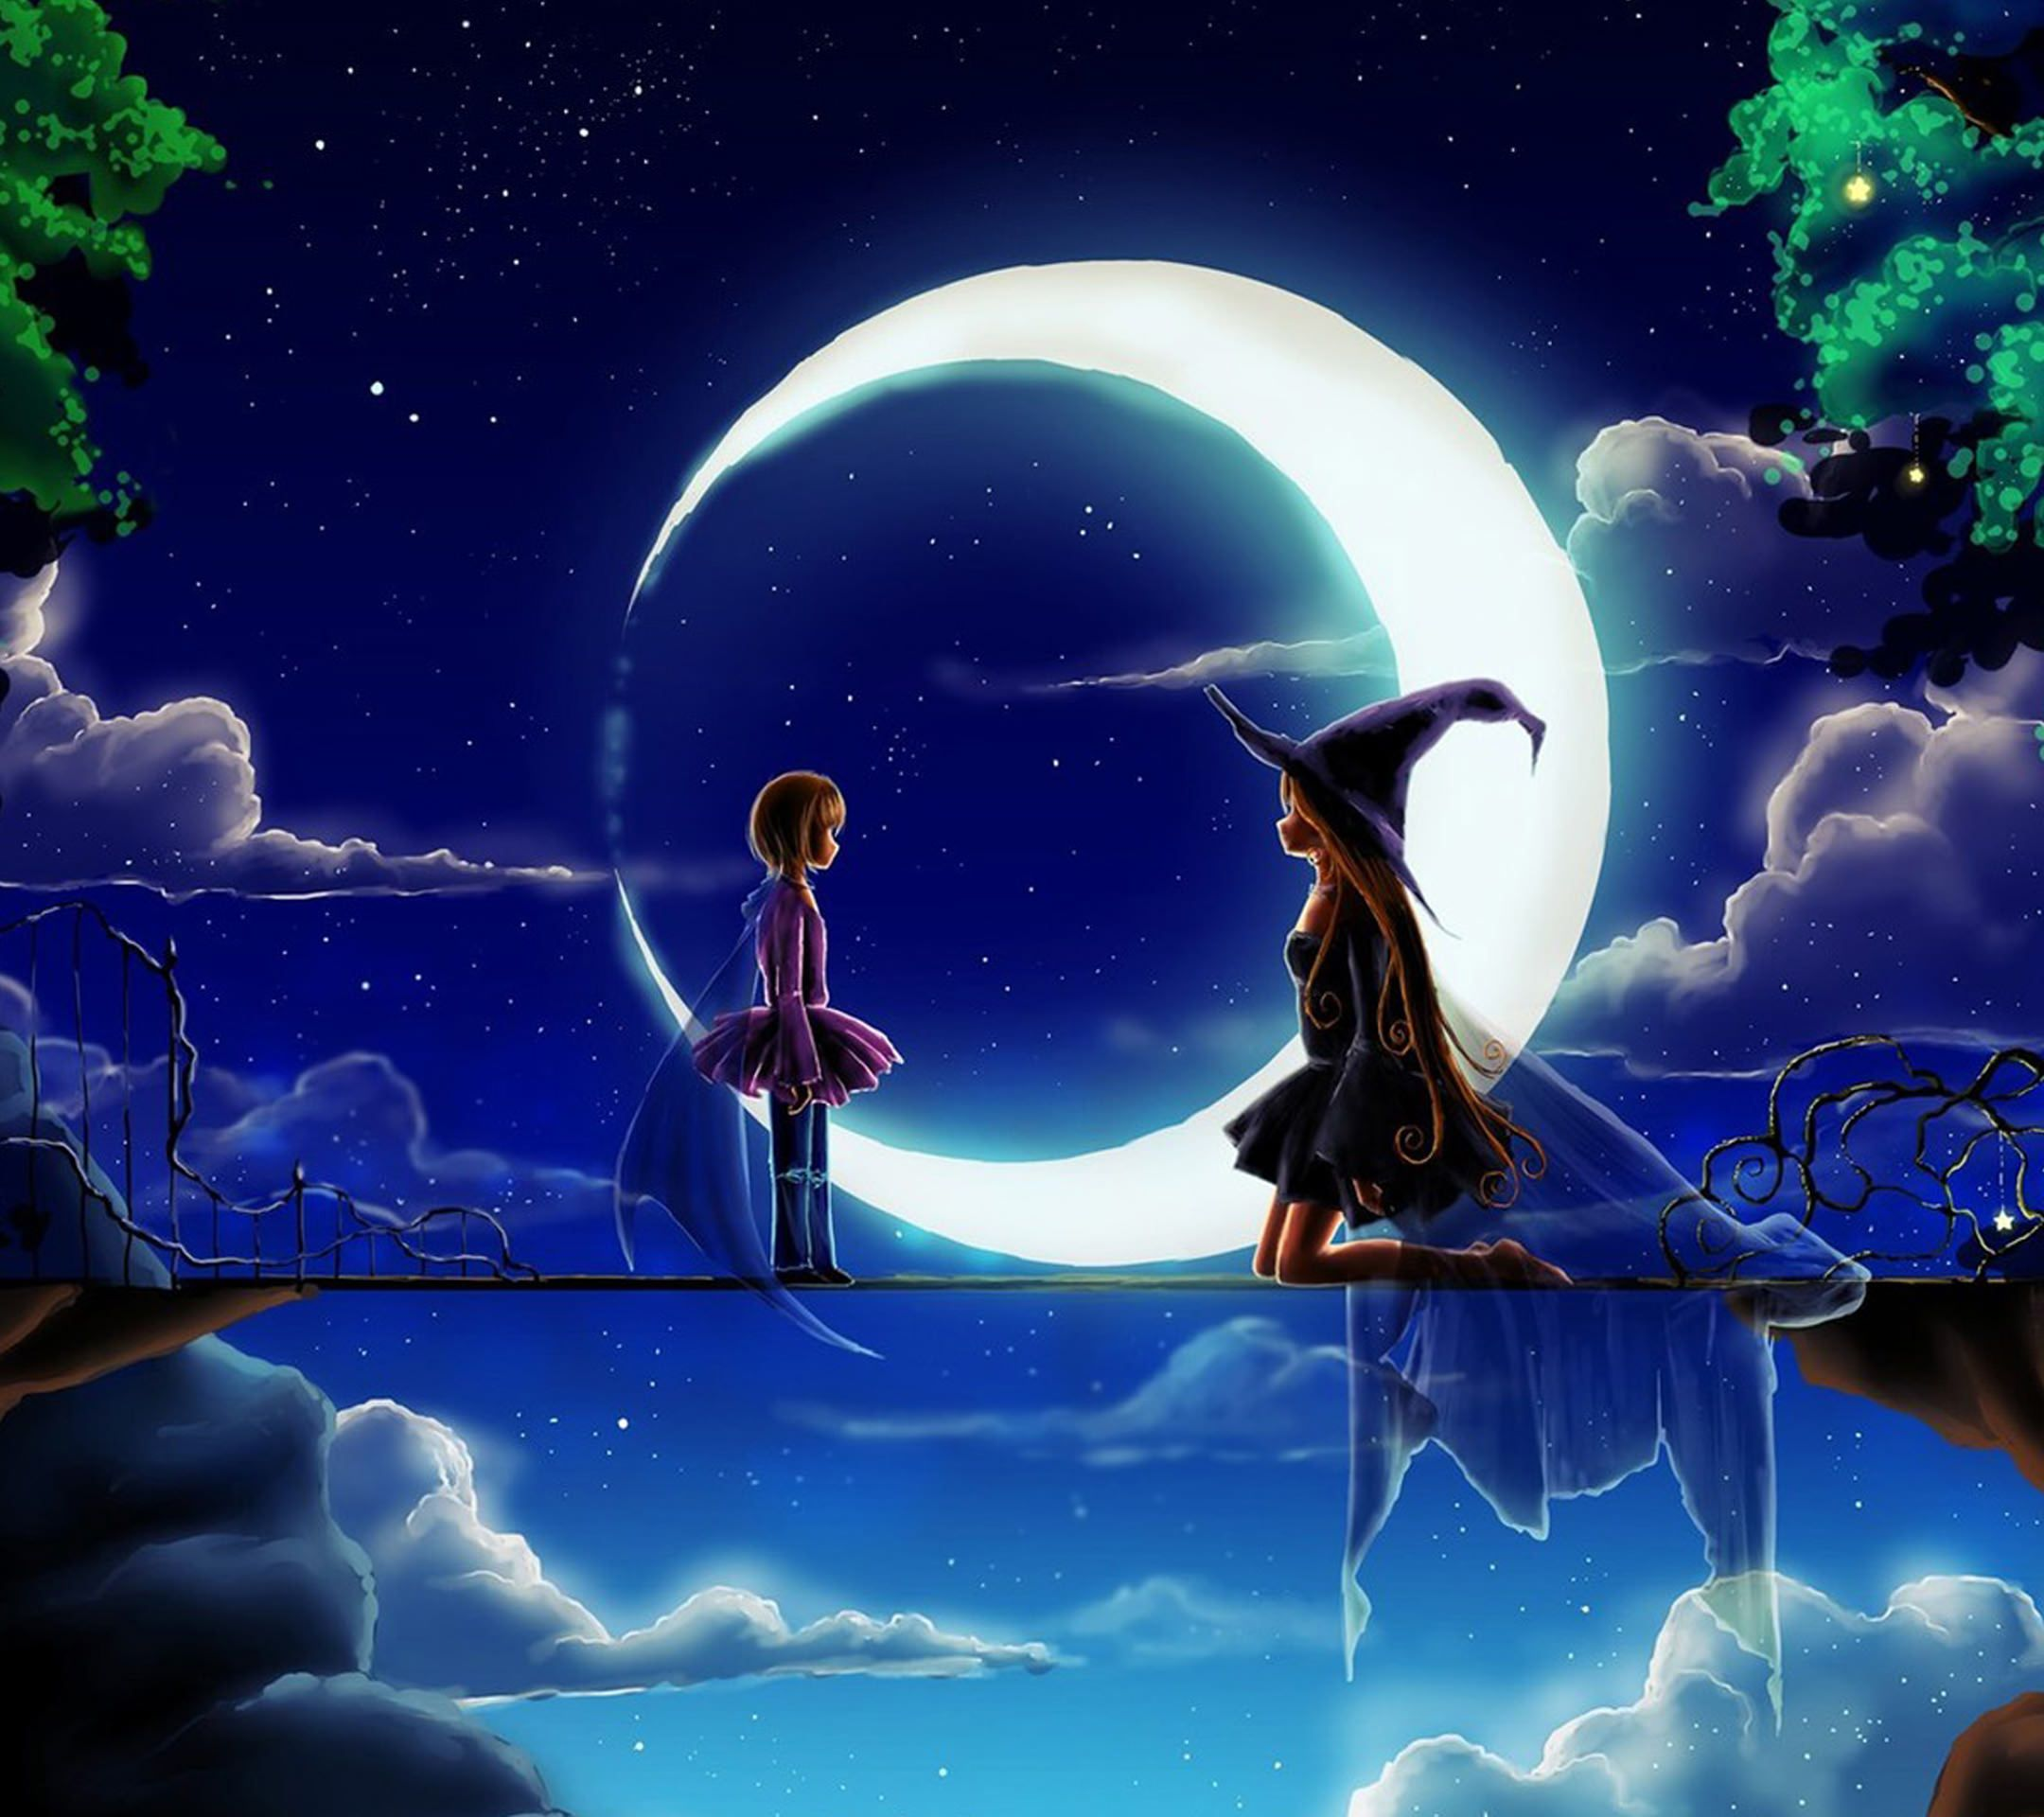 Related image Witch wallpaper, Good night wallpaper